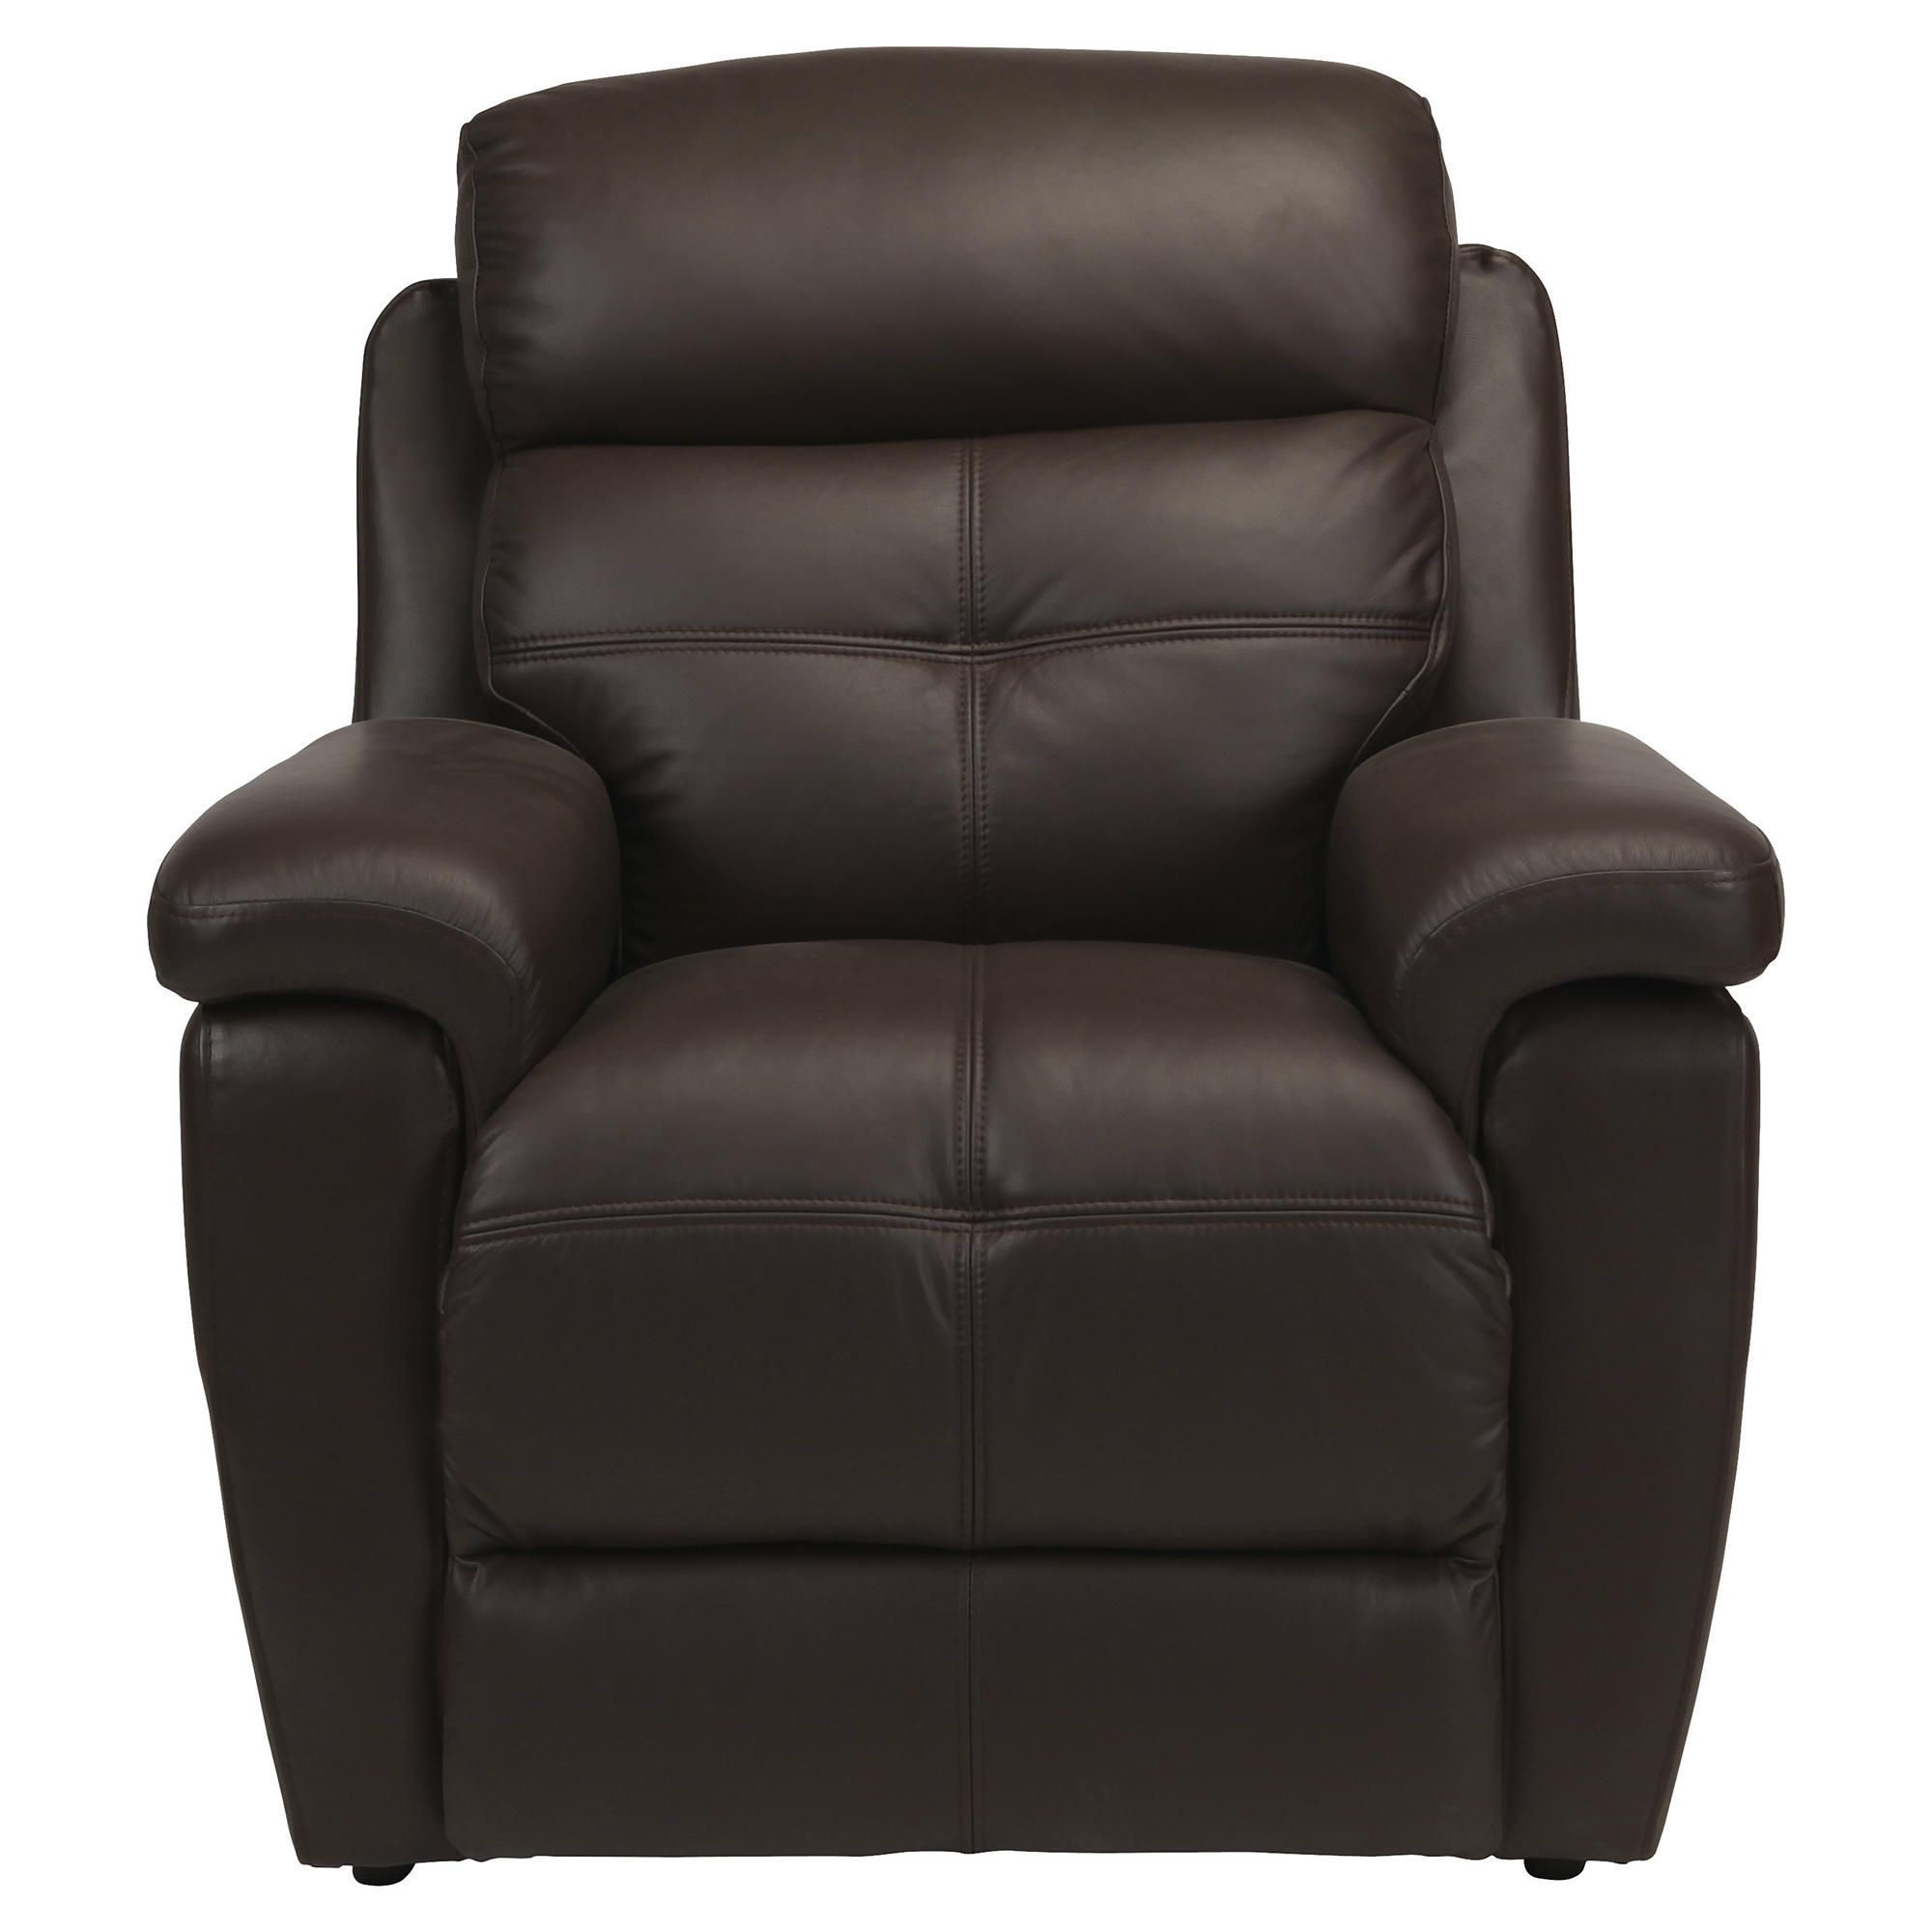 Leather Power Lift Recliner Chair Brown at Tesco Direct